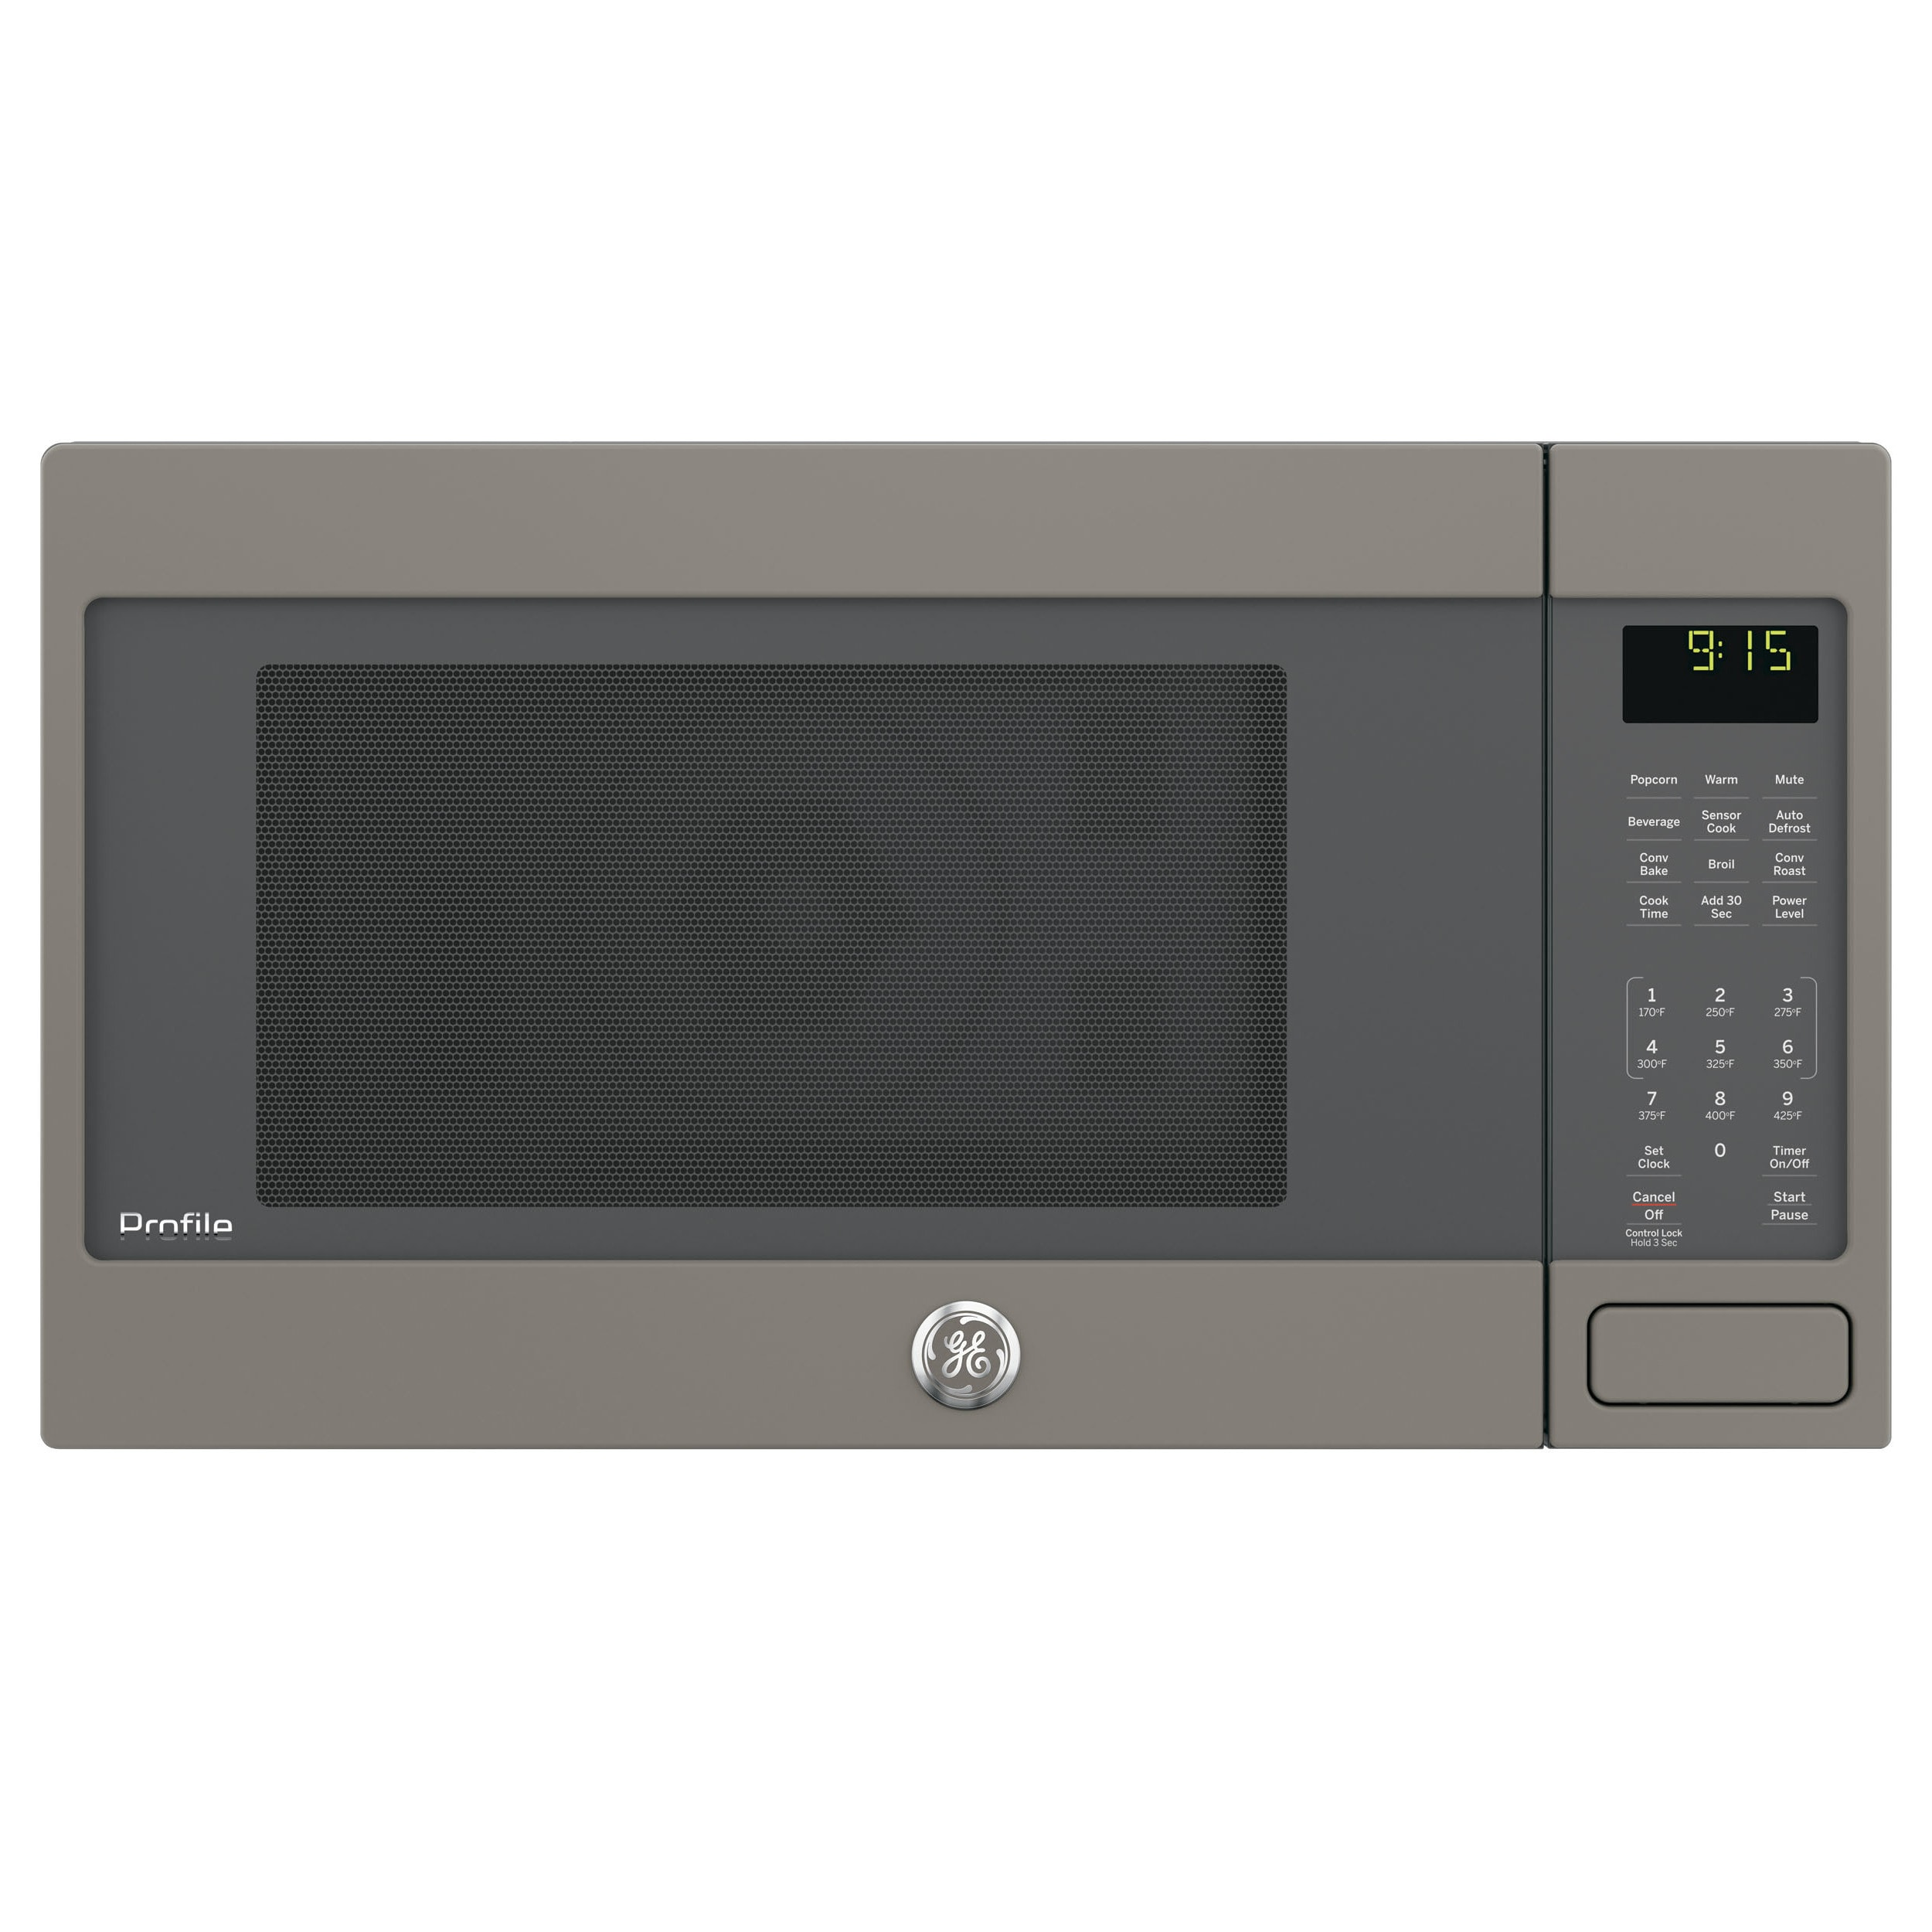 GE Profile Series 1.5-cubic Feet Countertop Convection/ M...